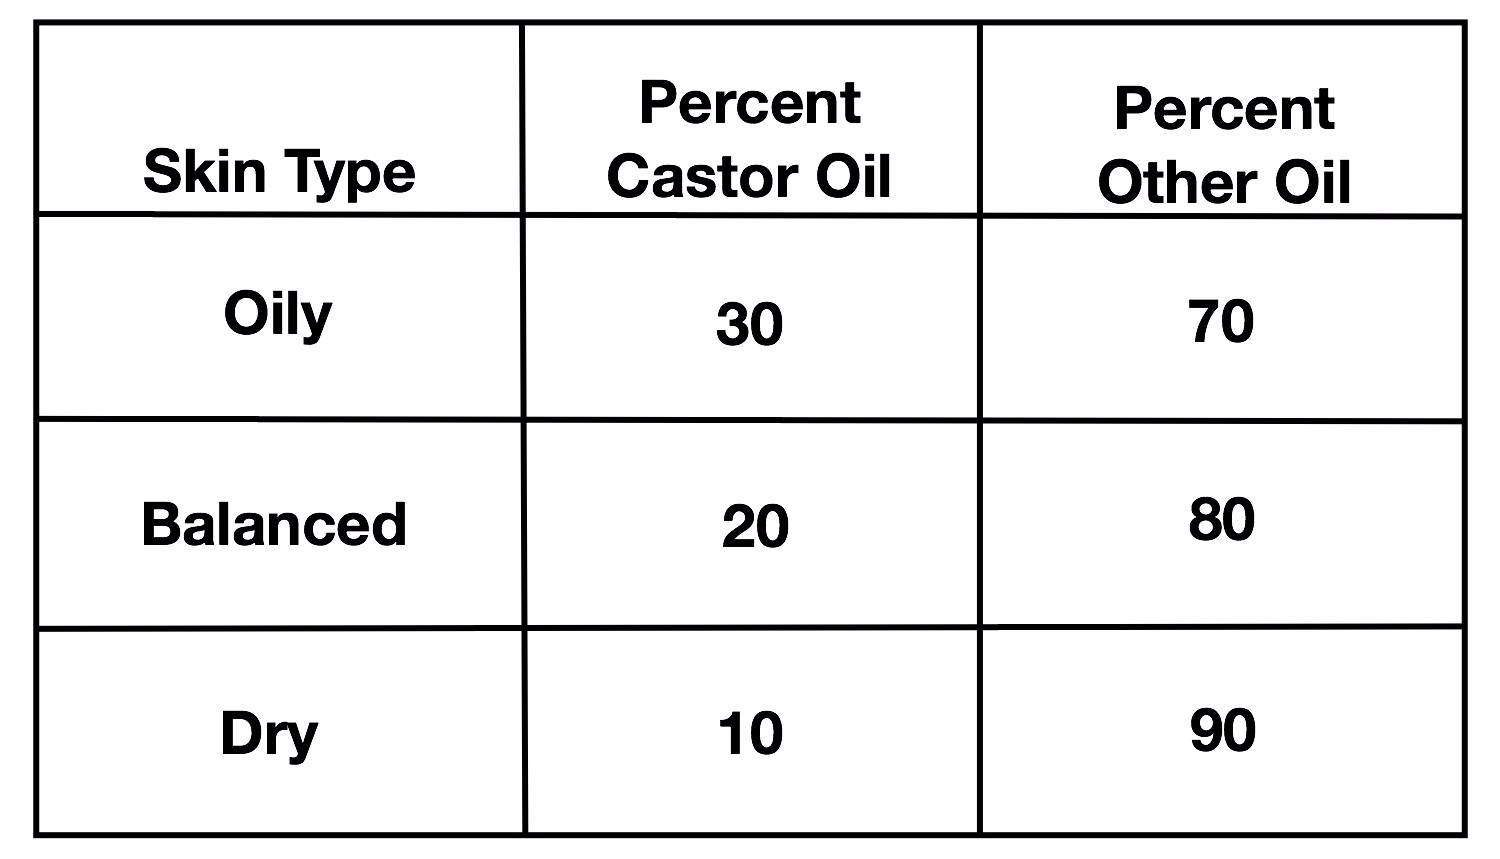 Oil Cleansing Method Ratio of Castor Oil to Other Oil